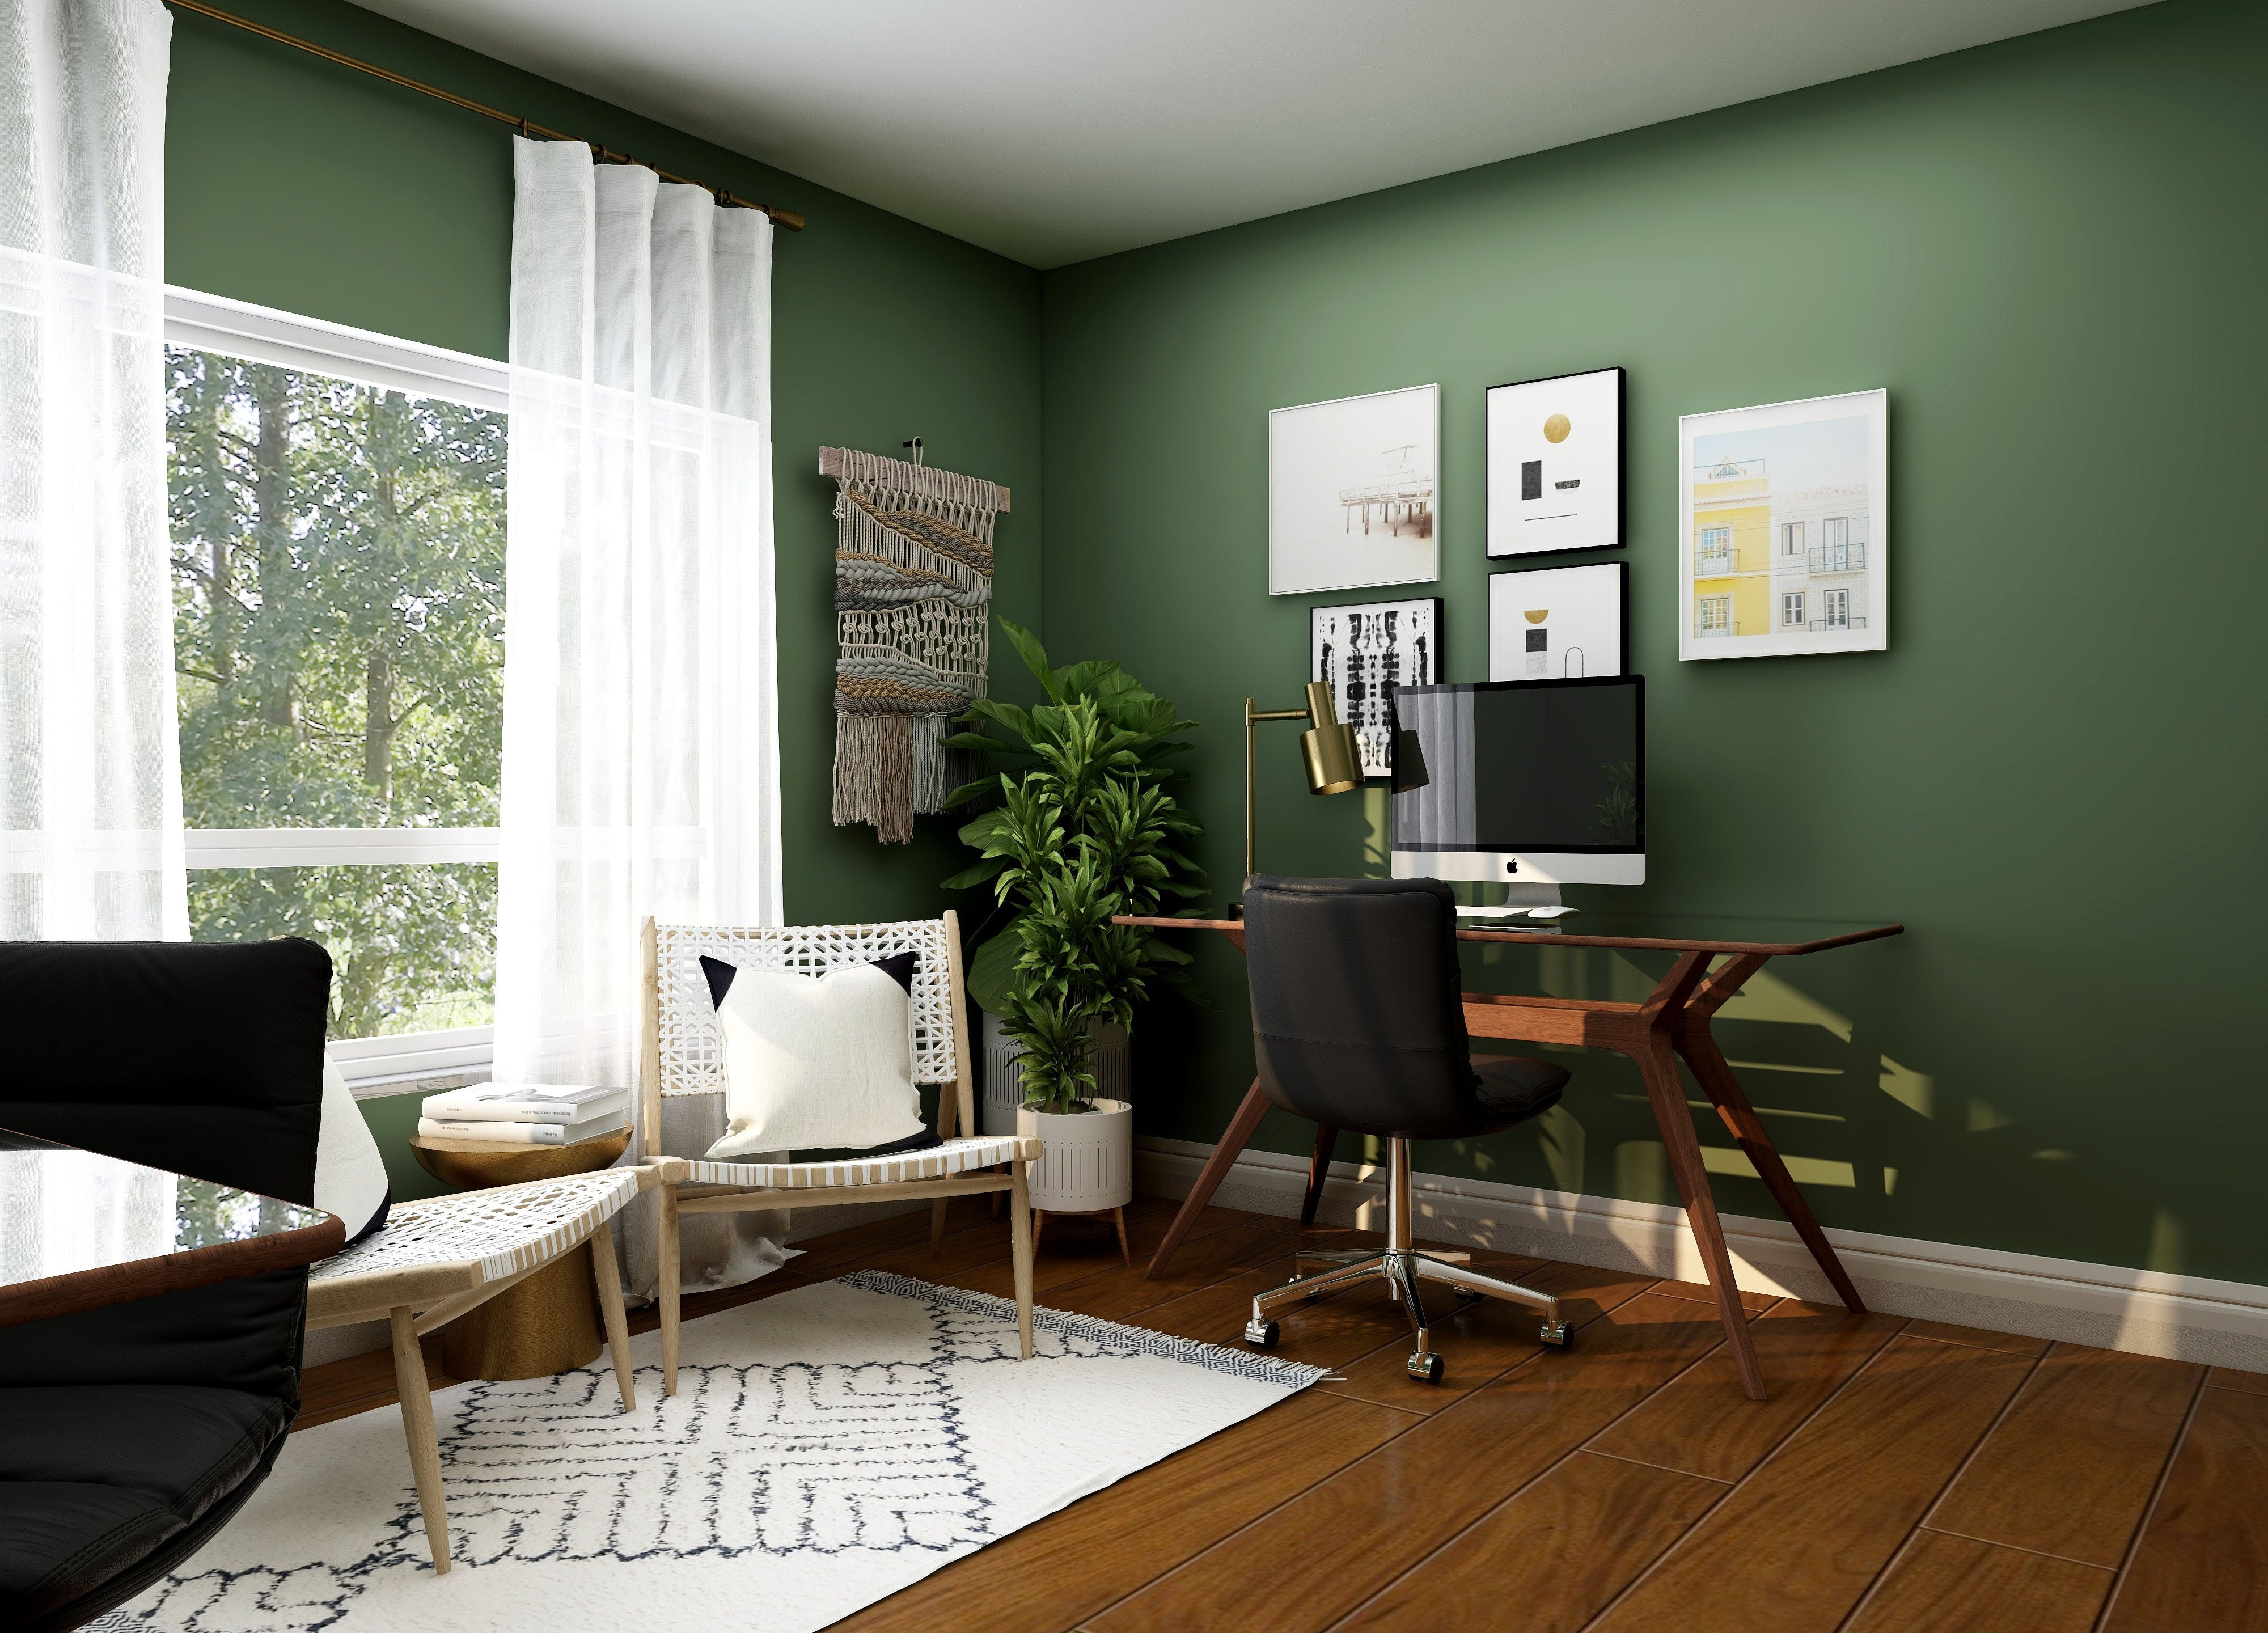 millennial homebuying trends office